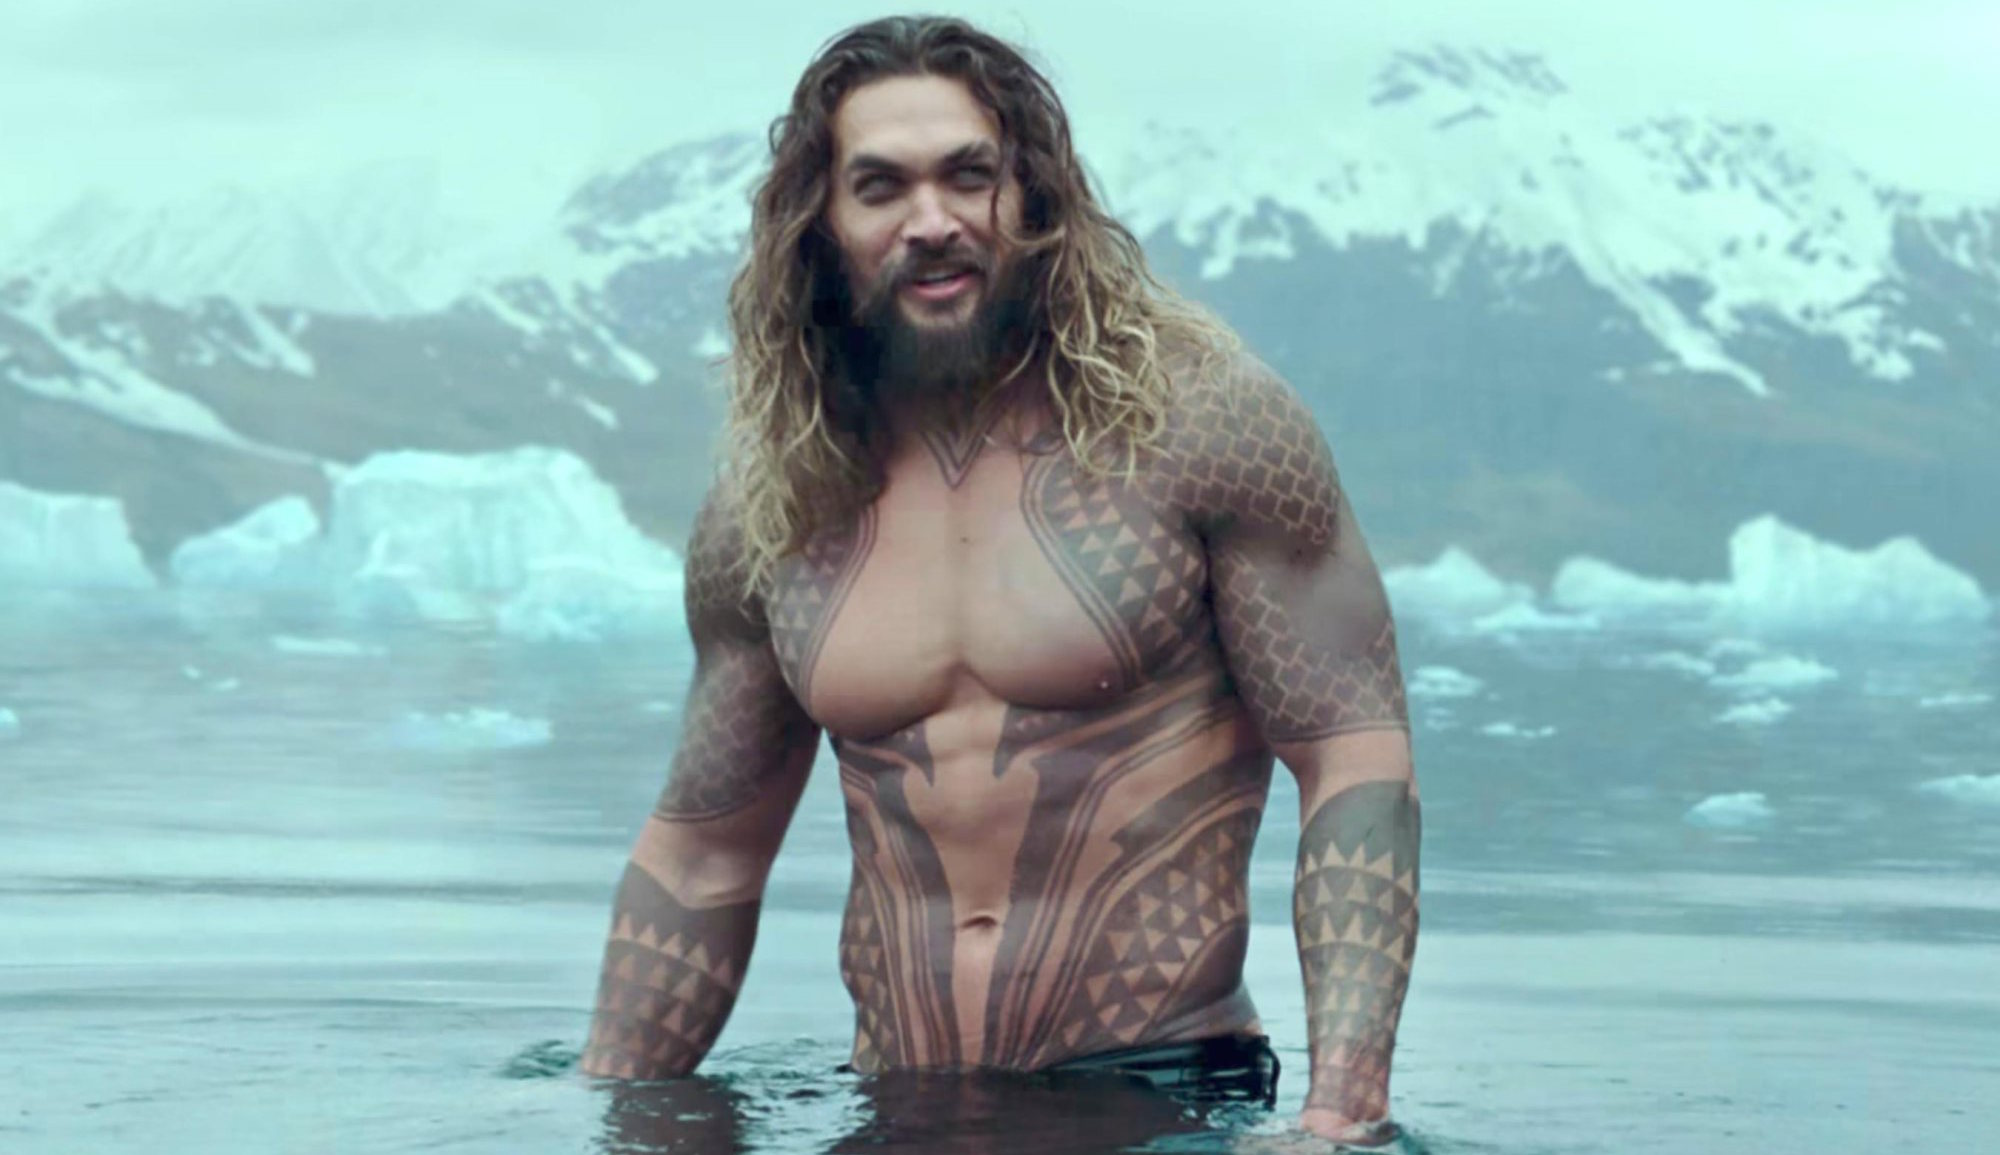 justice_league_aquaman_jason_momoa